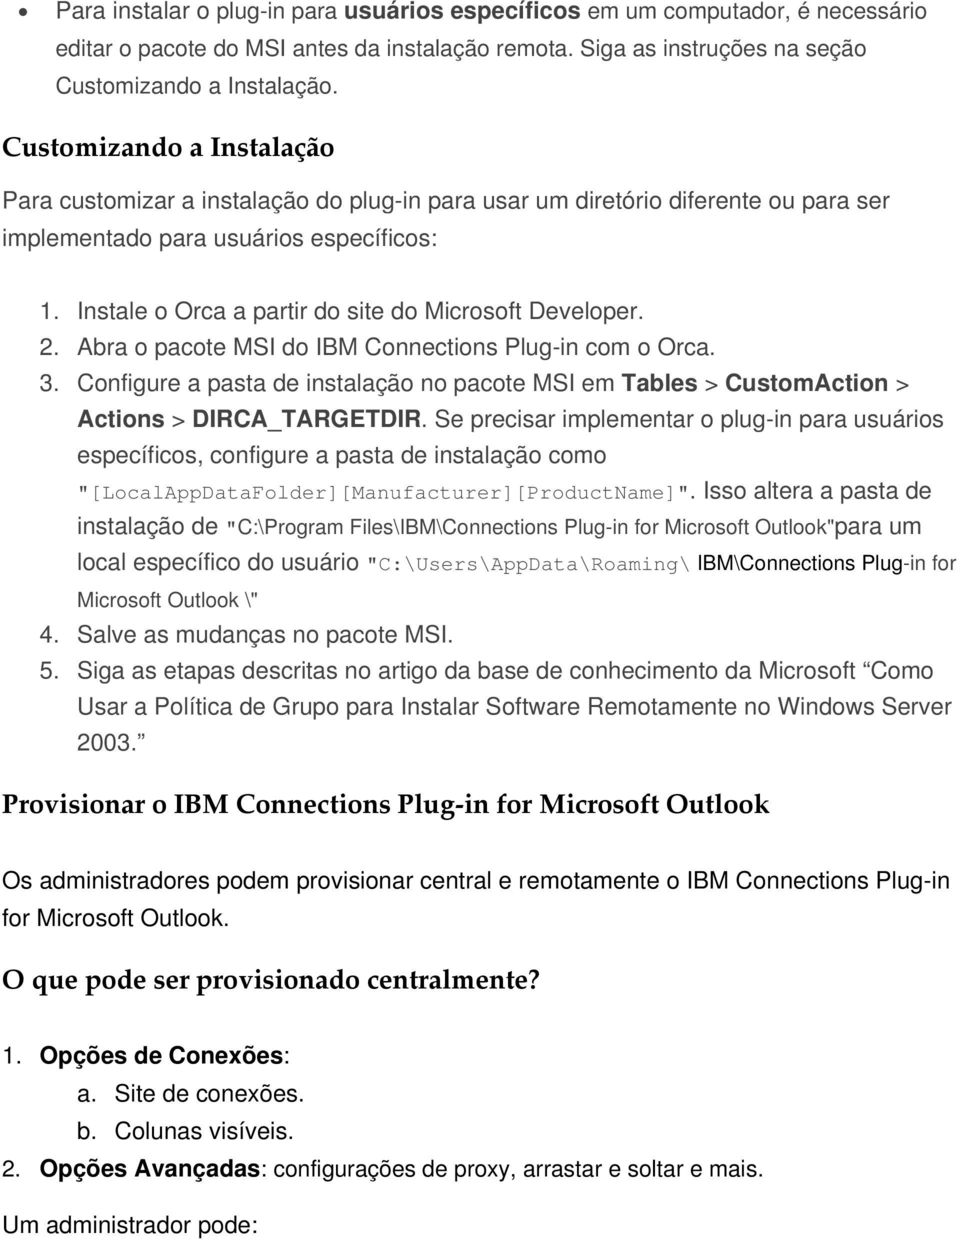 Instale o Orca a partir do site do Microsoft Developer. 2. Abra o pacote MSI do IBM Connections Plug-in com o Orca. 3.